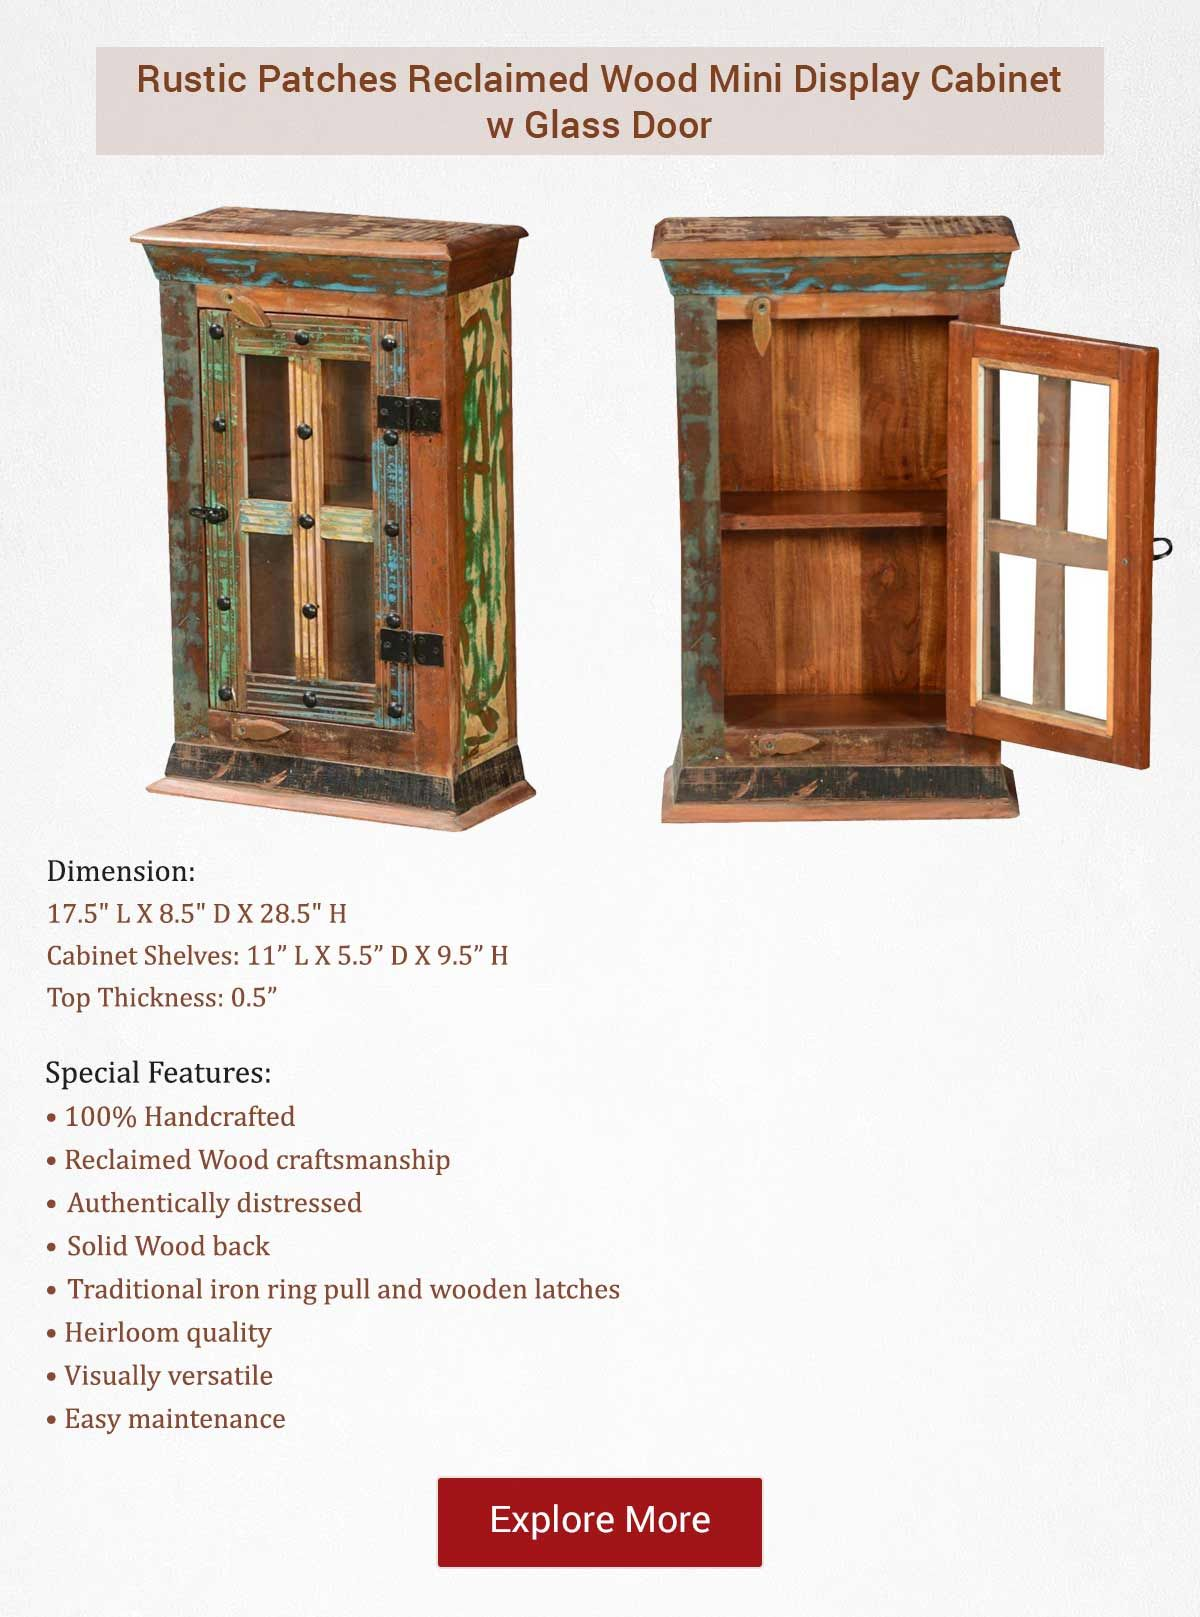 Rustic Patches Reclaimed Wood Mini Display Cabinet W Glass Door Display Cabinet Glass Door Reclaimed Wood Small cabinet with glass door